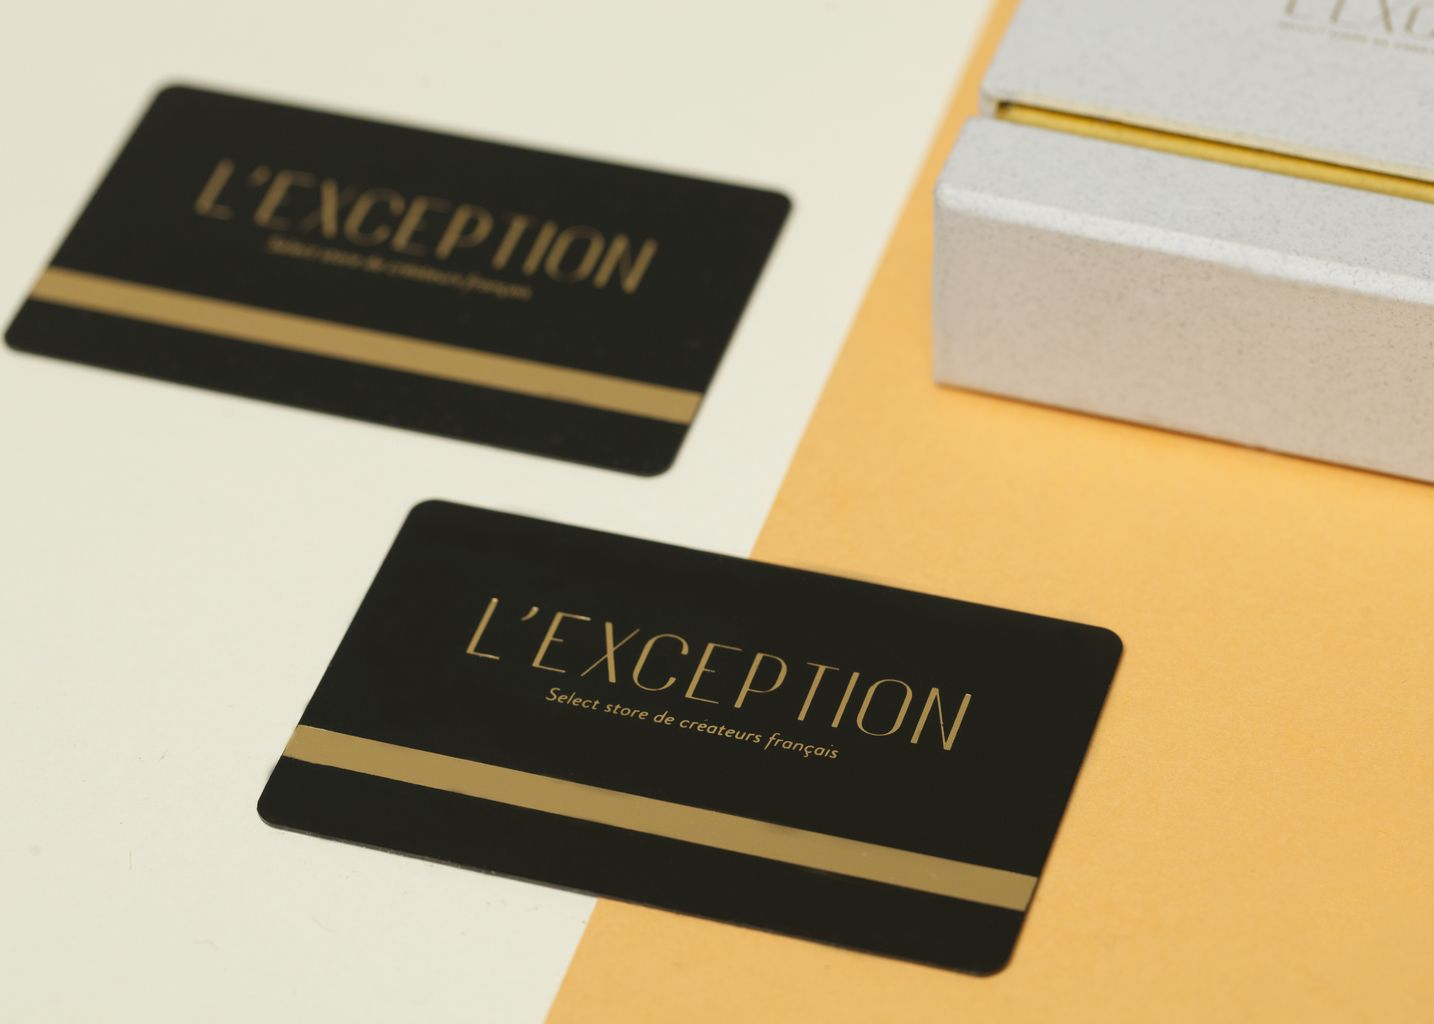 La carte cadeau - L'Exception